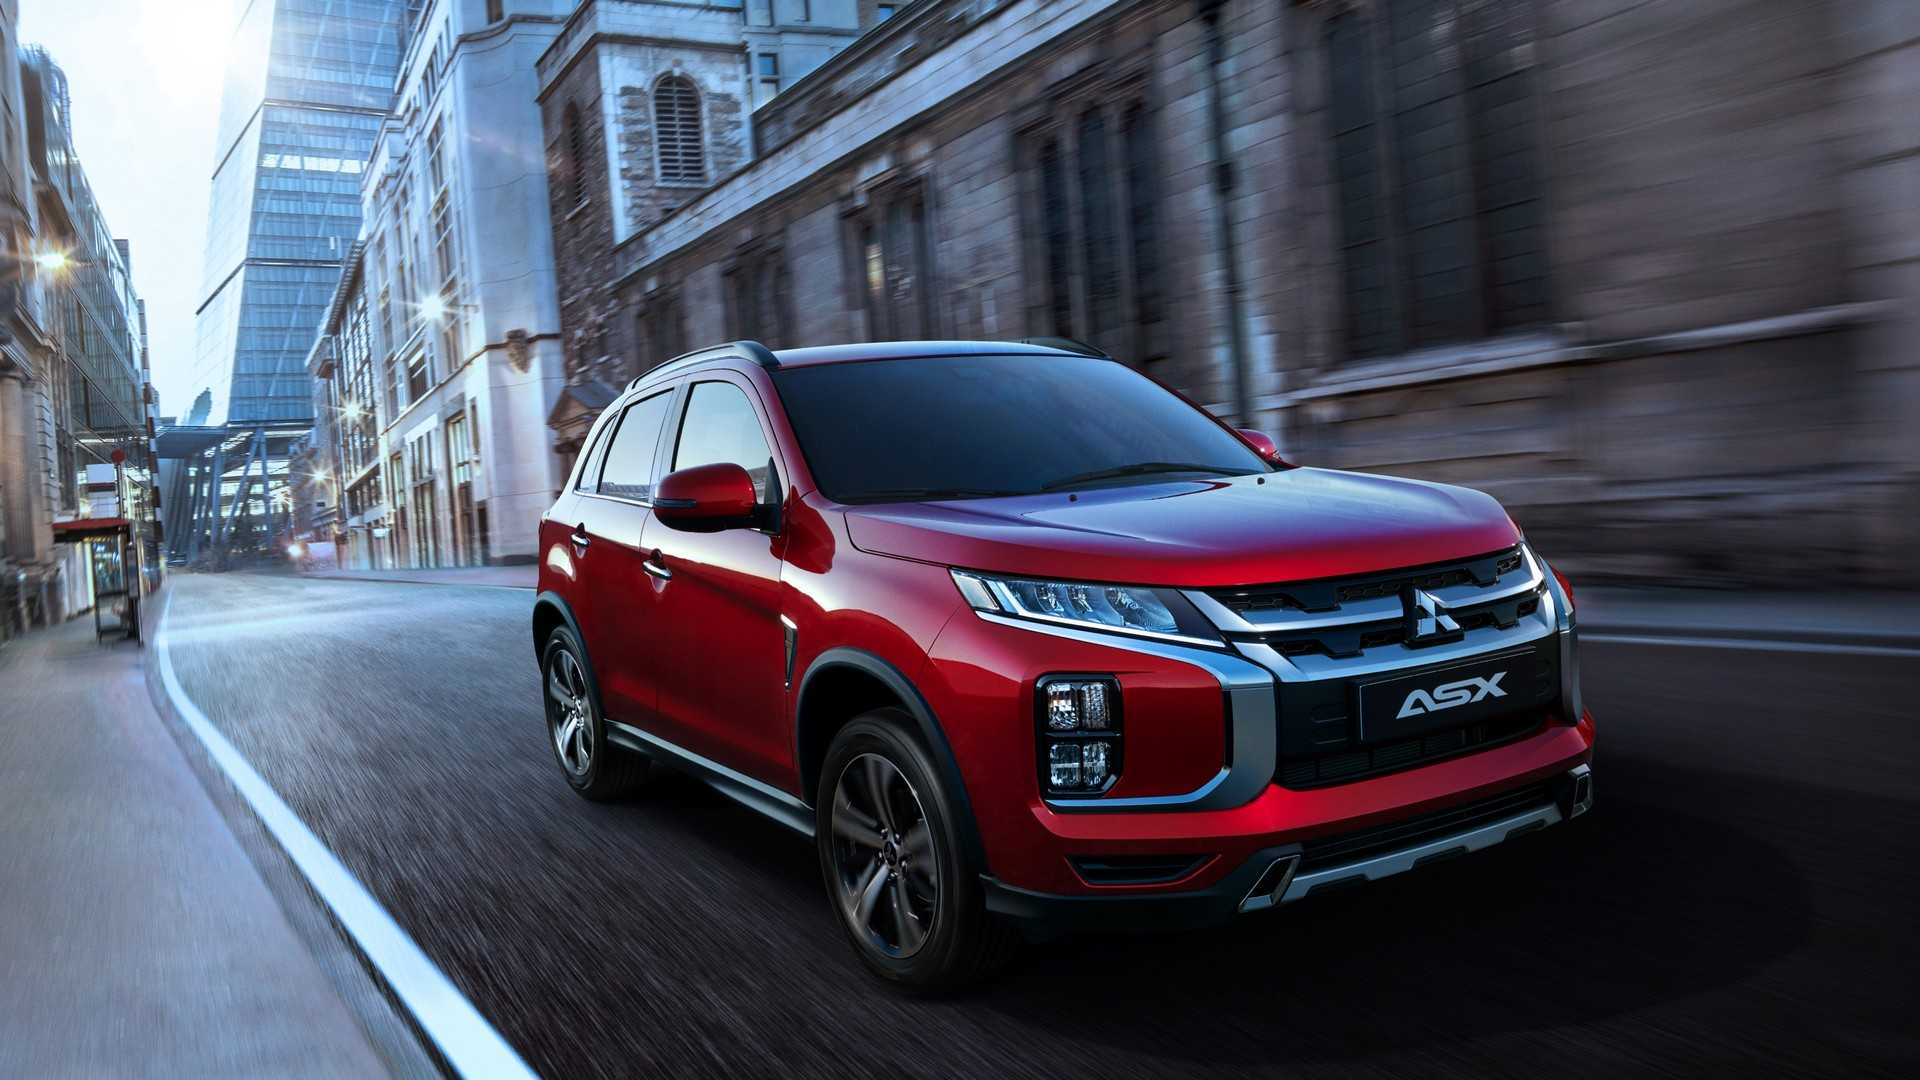 97 New Uusi Mitsubishi Asx 2020 Review